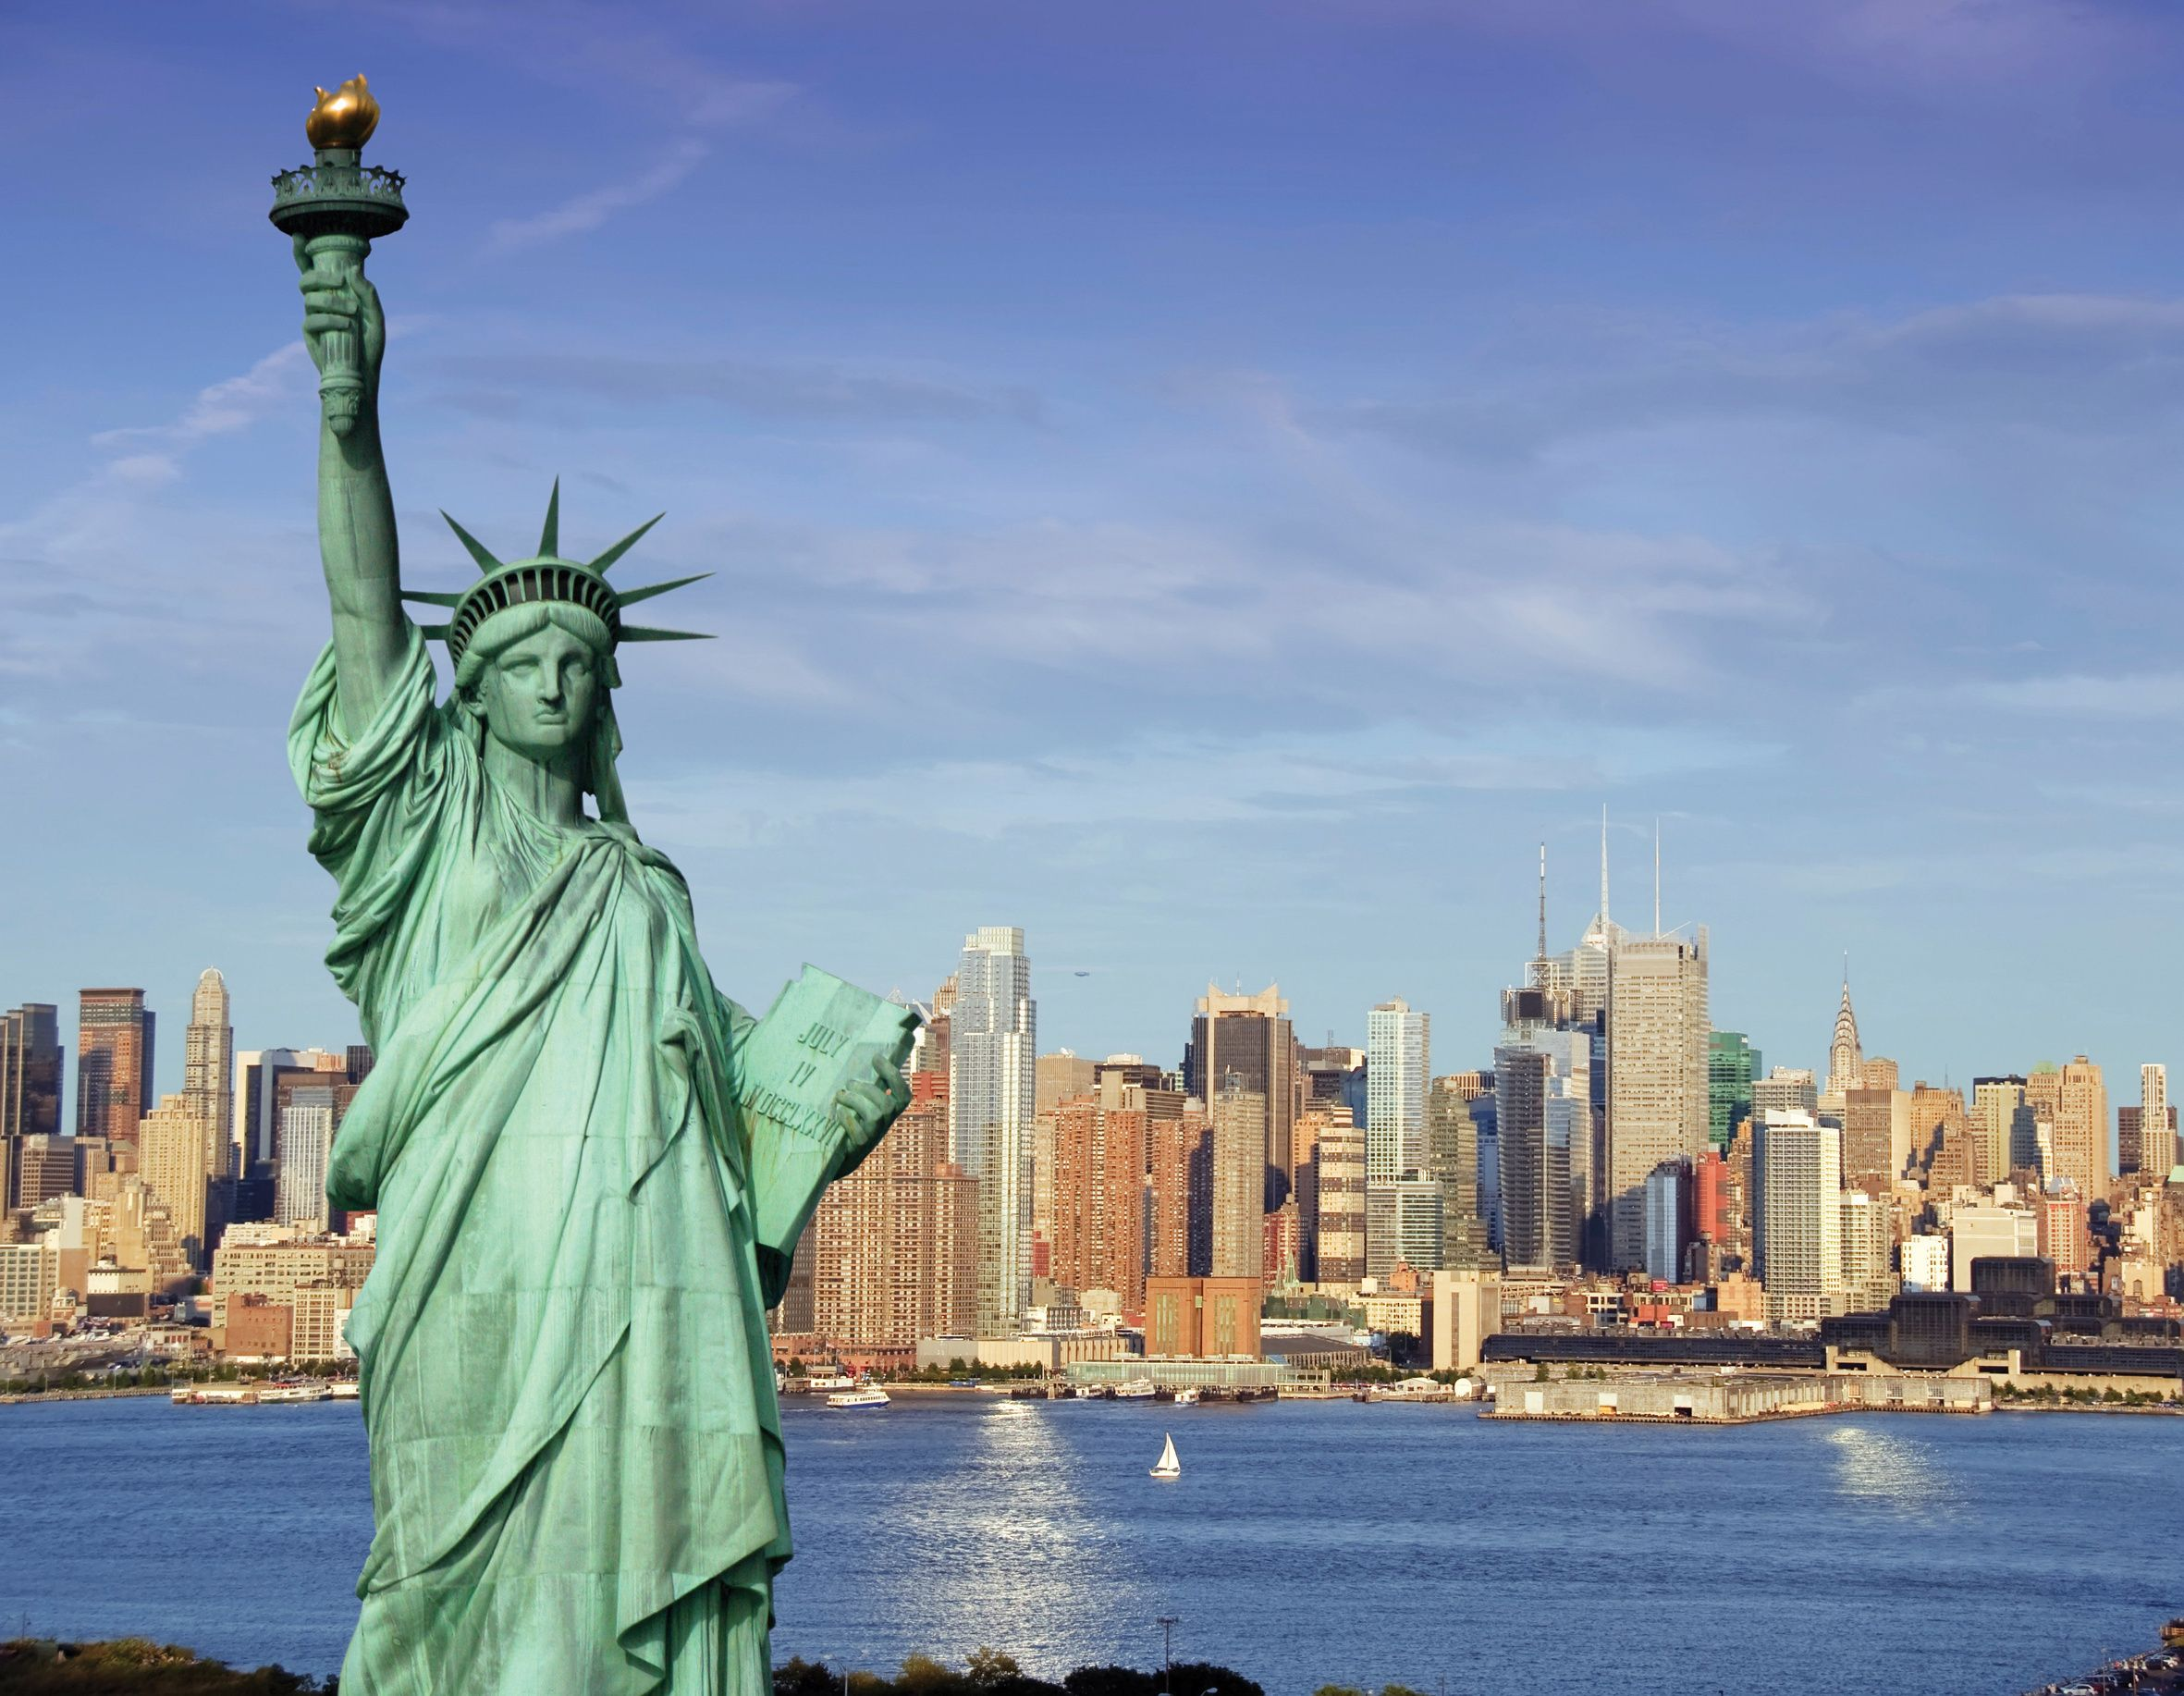 the statue of liberty in new york harbour will be off limits to the statue of liberty in new york harbour will be off limits to tourists during the